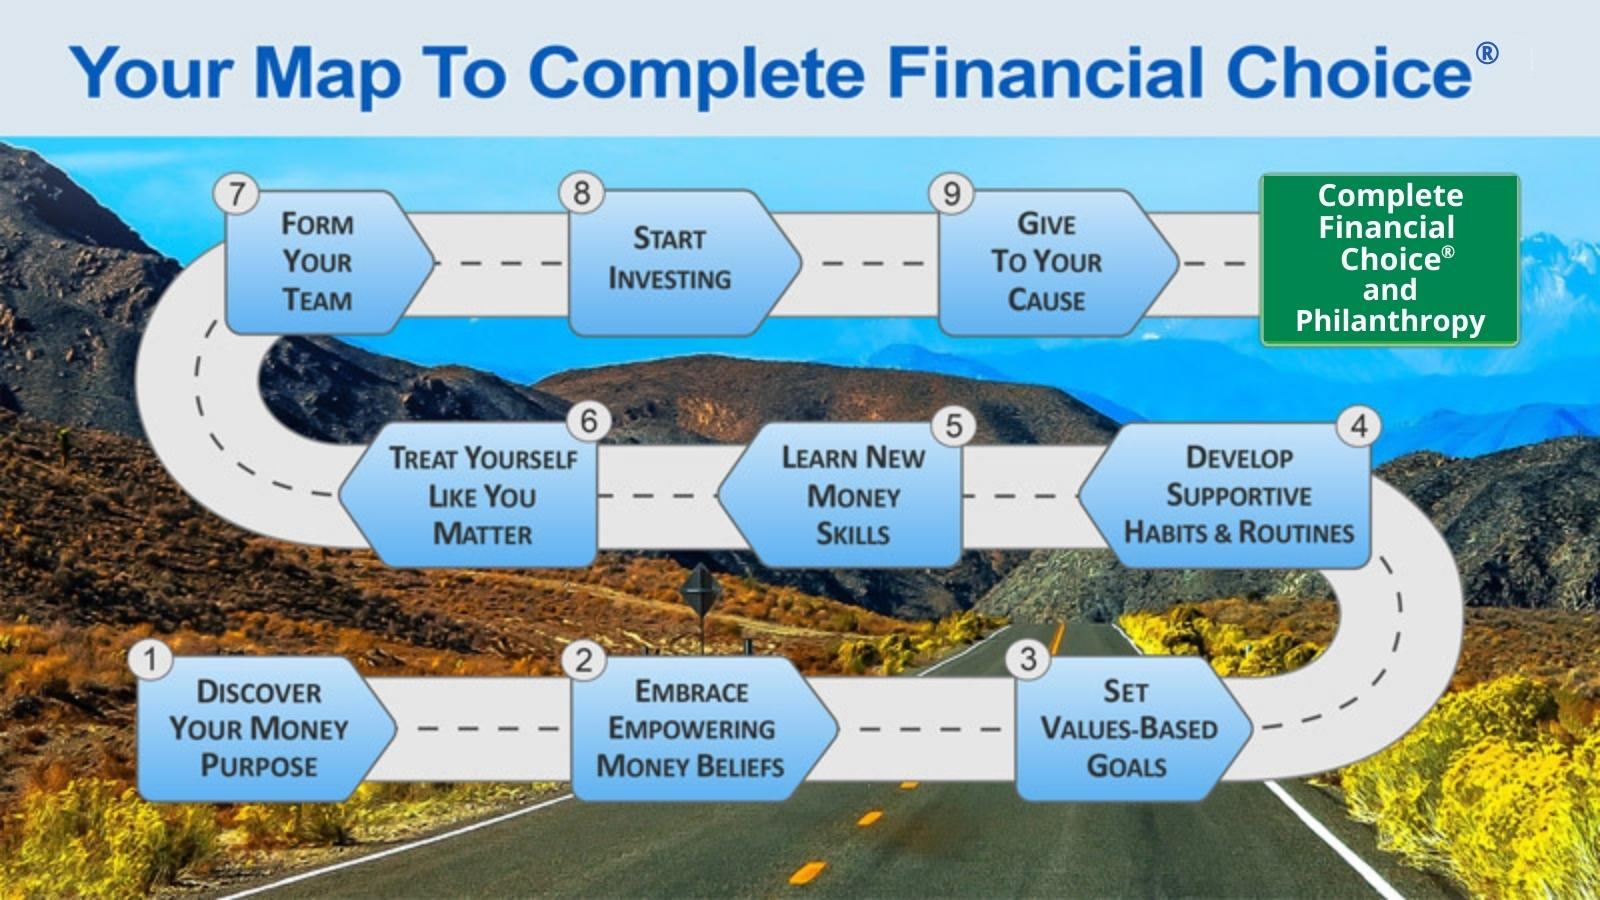 Your Map to Complete Financial Choice